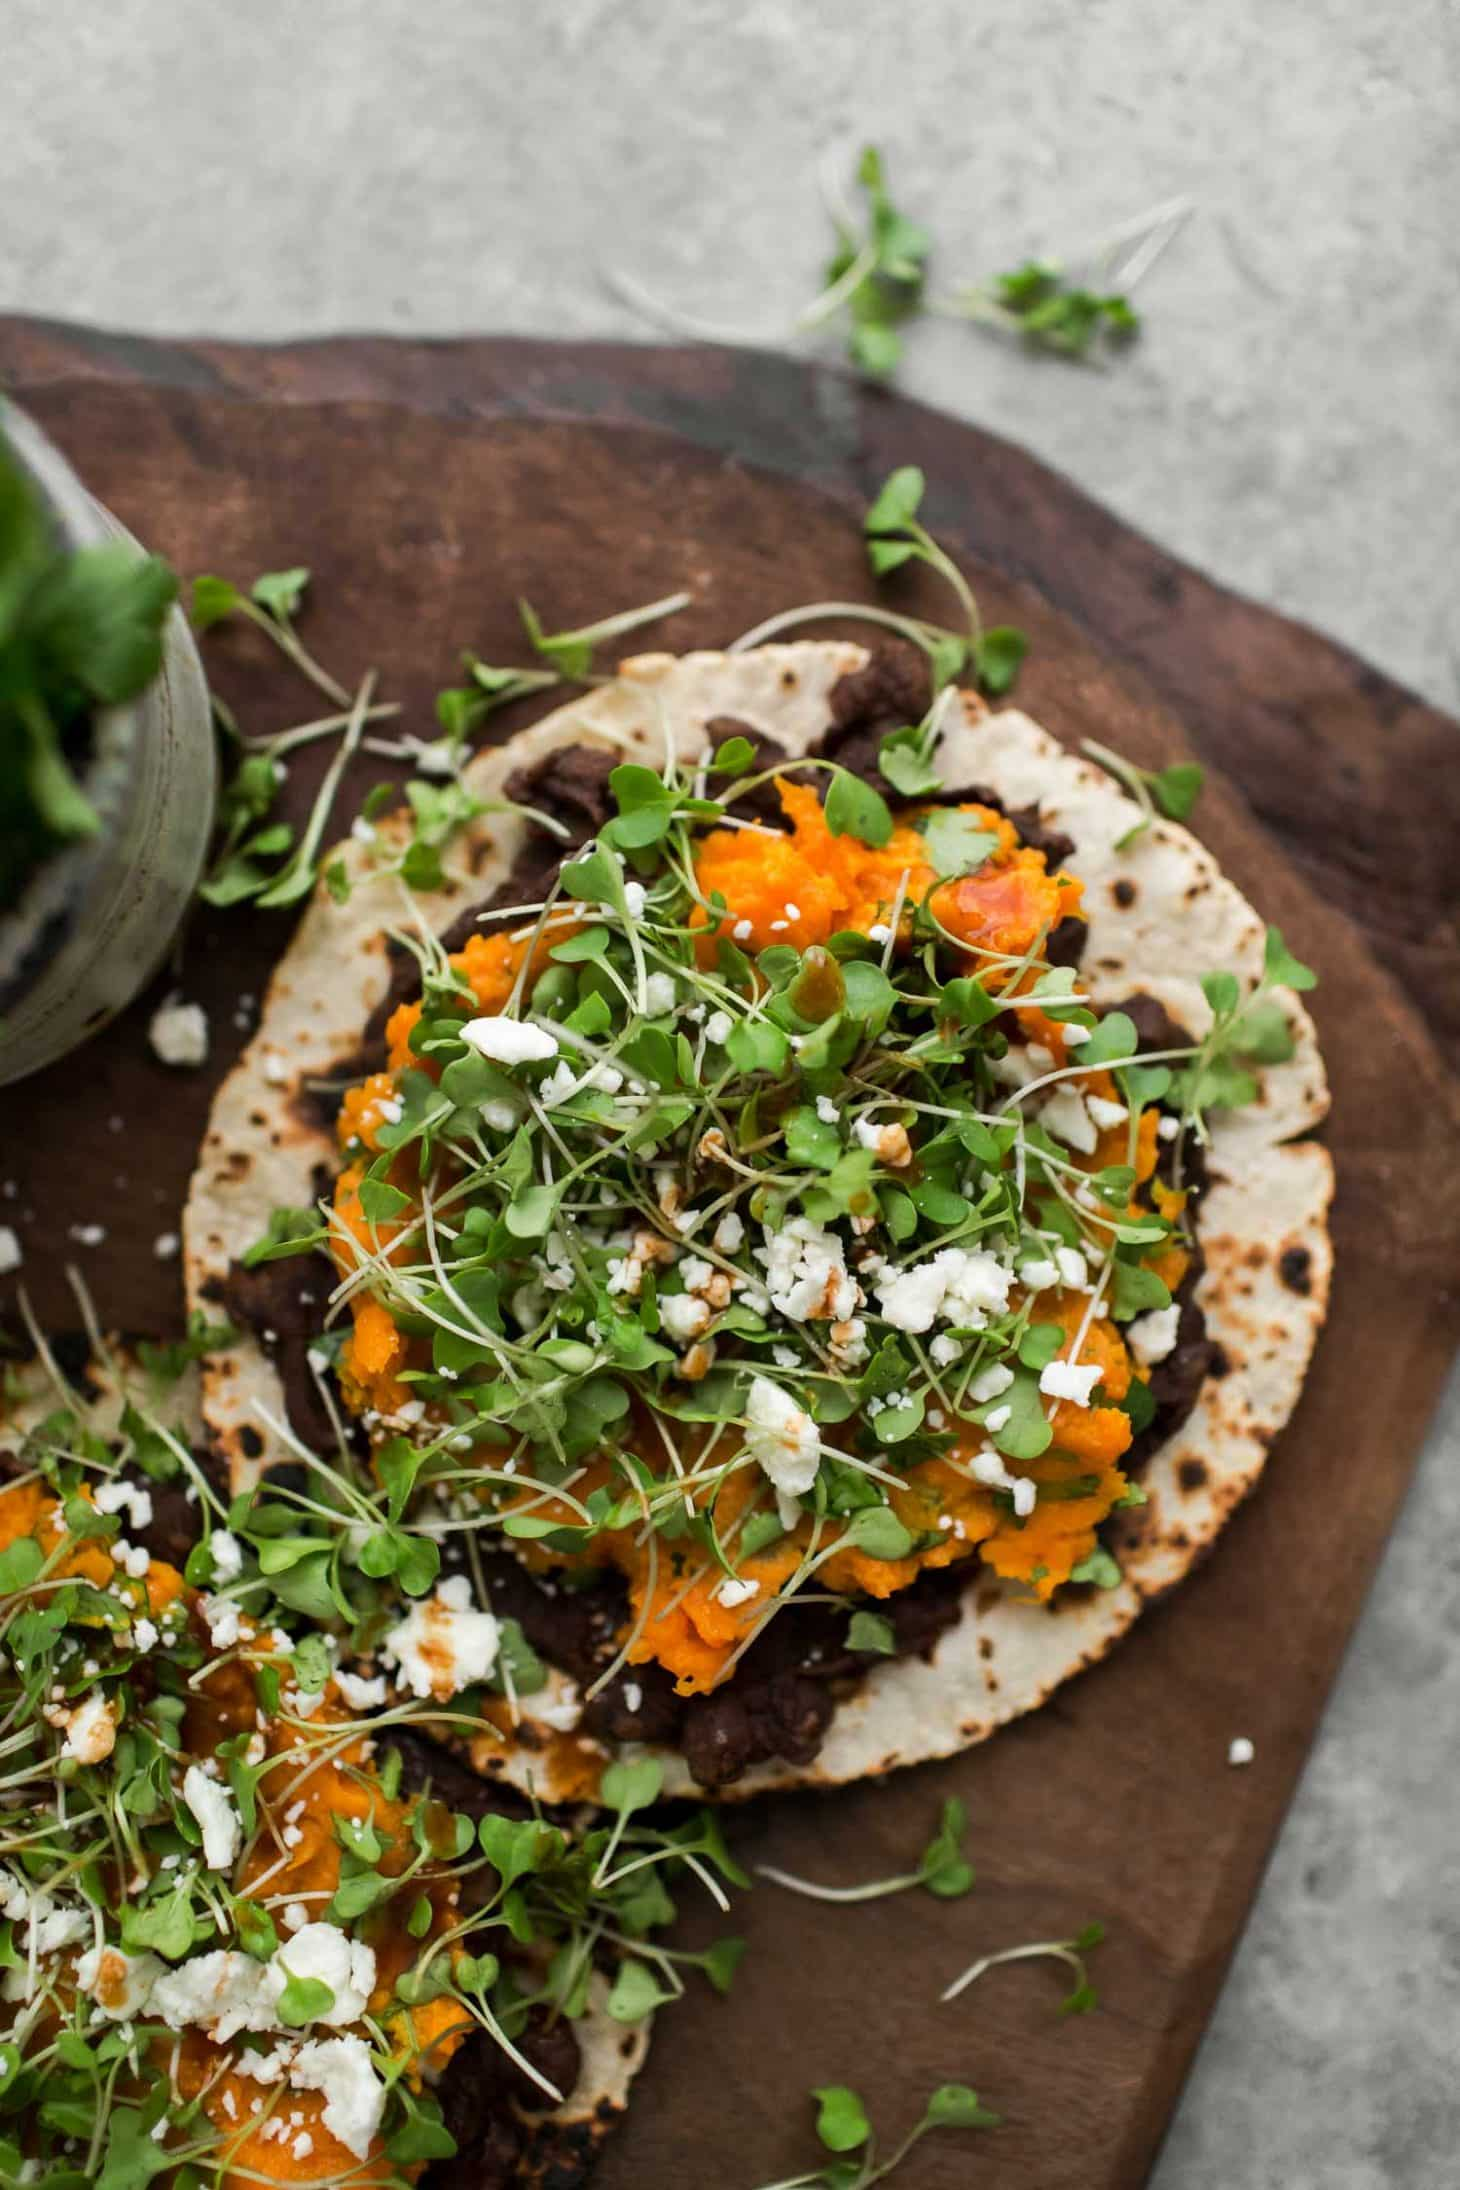 Cilantro Sweet Potato Tostadas with Mashed Black Beans | Naturally Ella